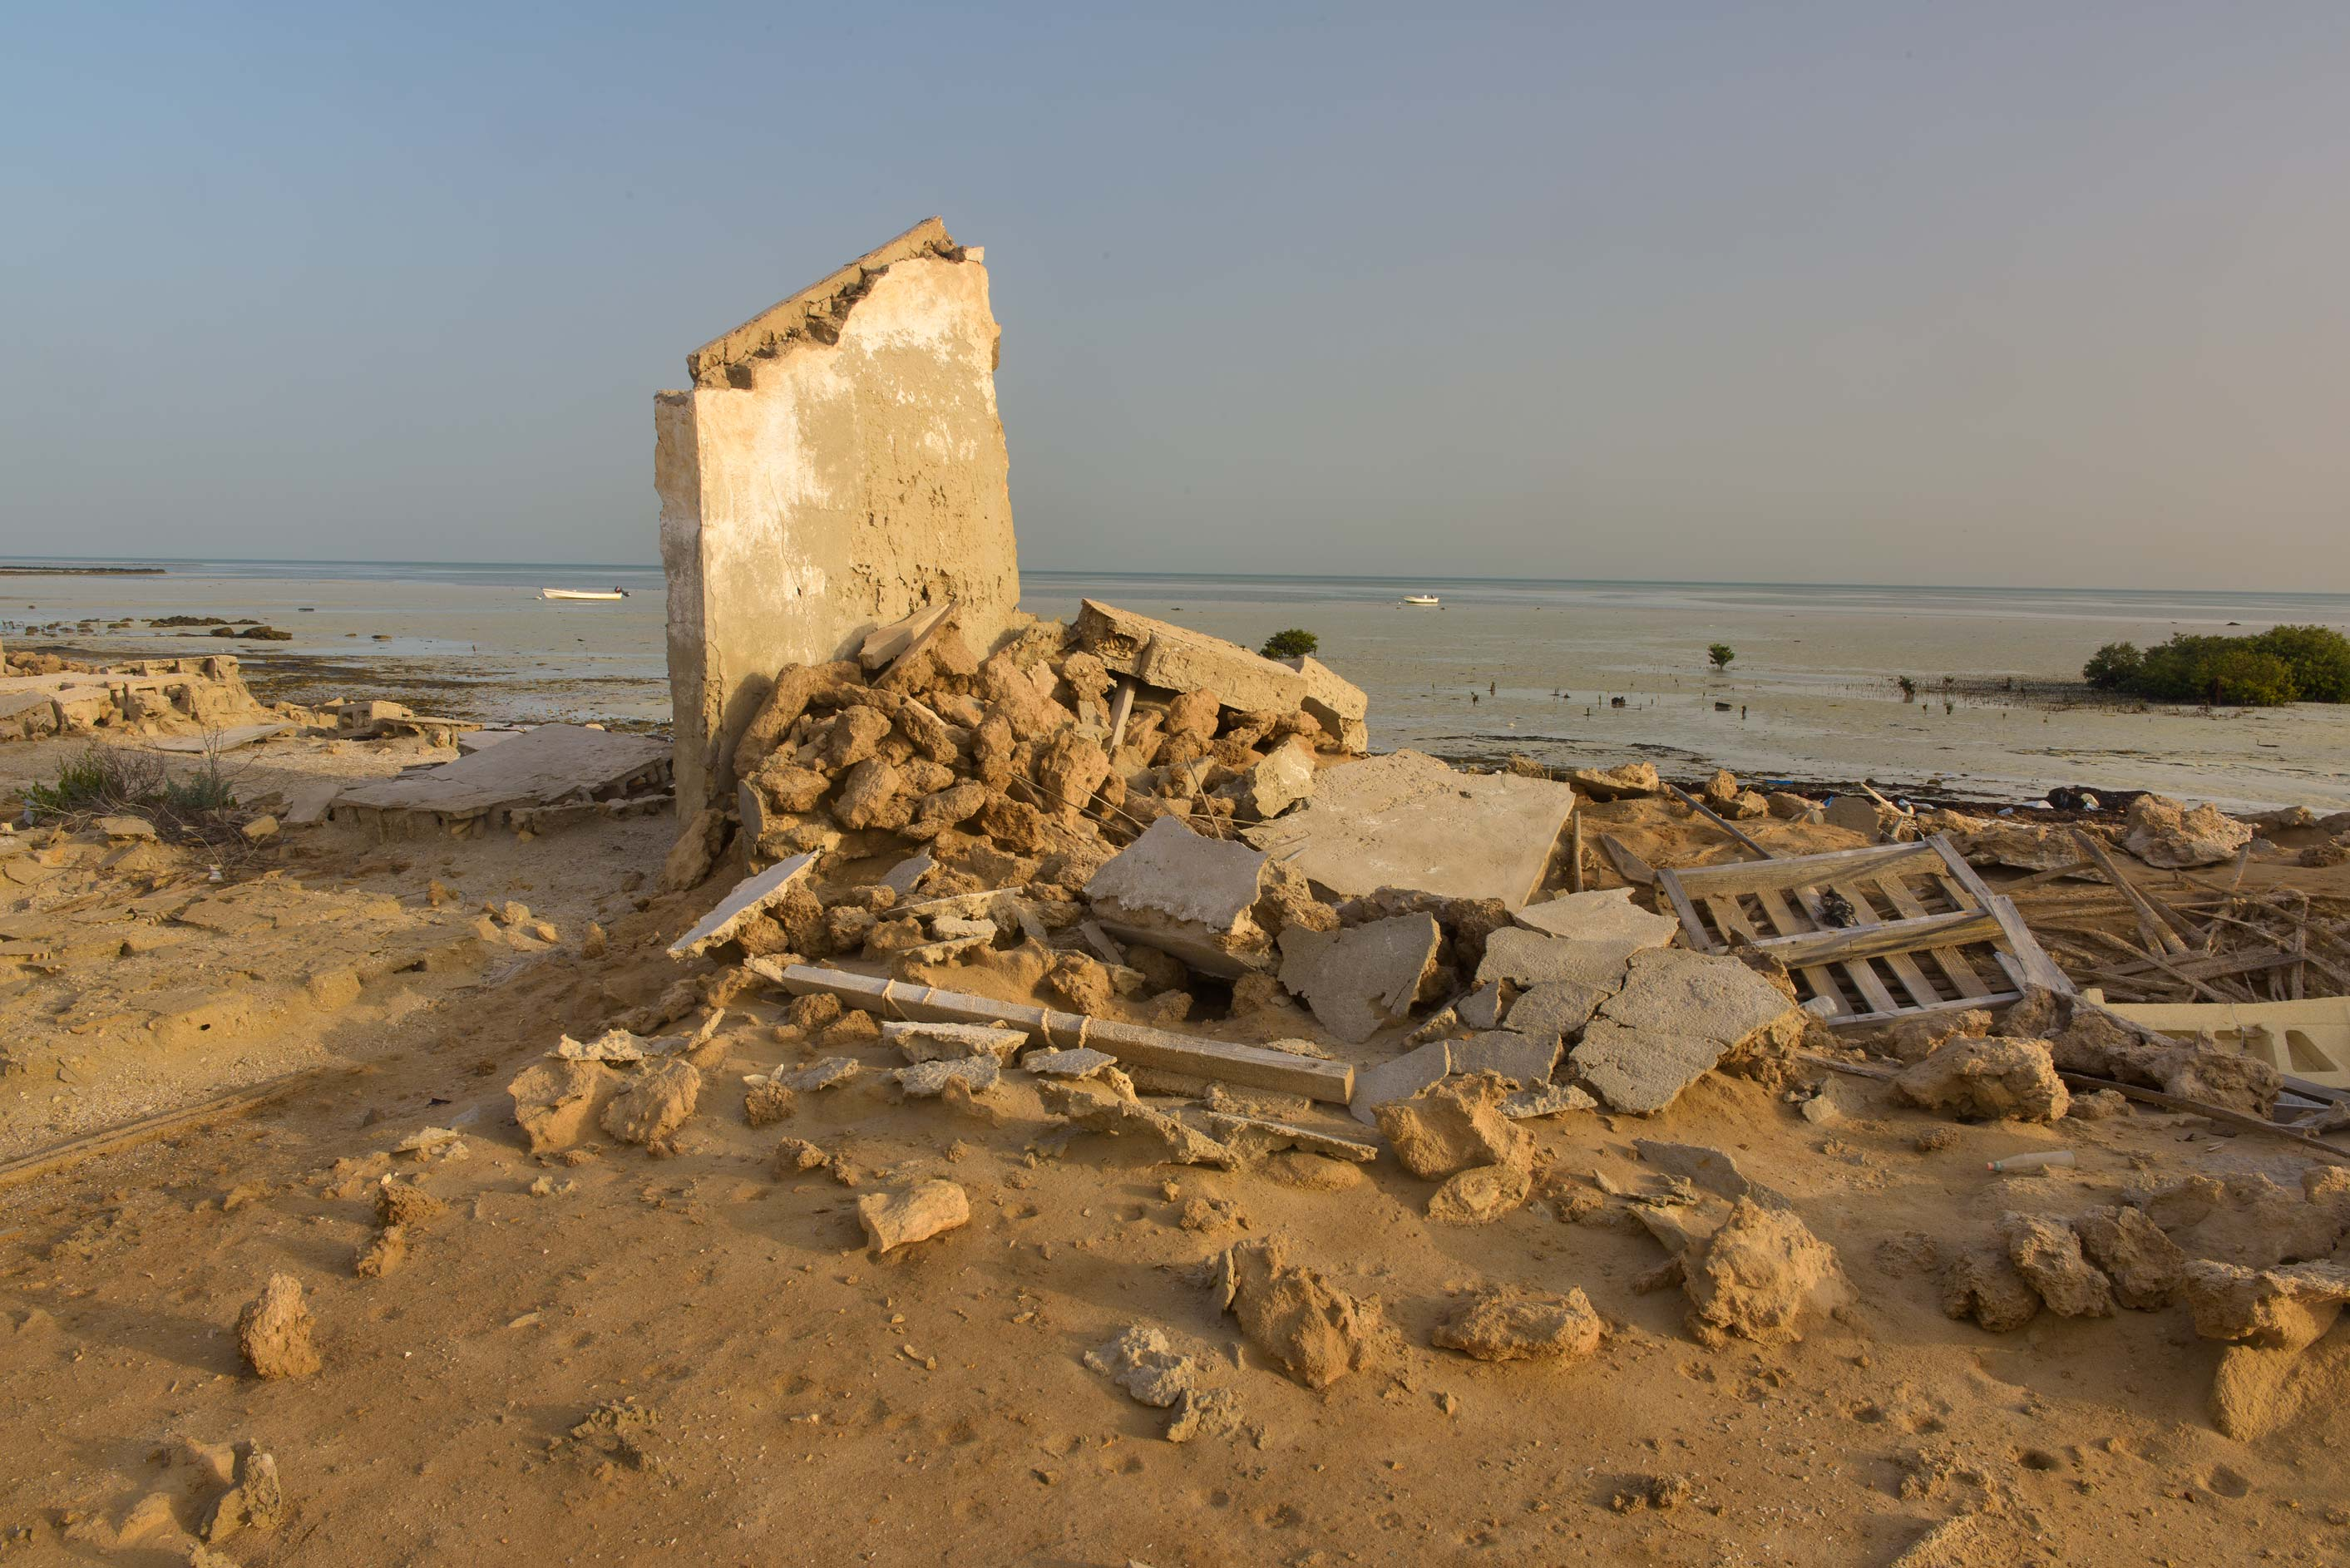 Remains of a house in a village of Al Areesh (Arish). Northern Qatar